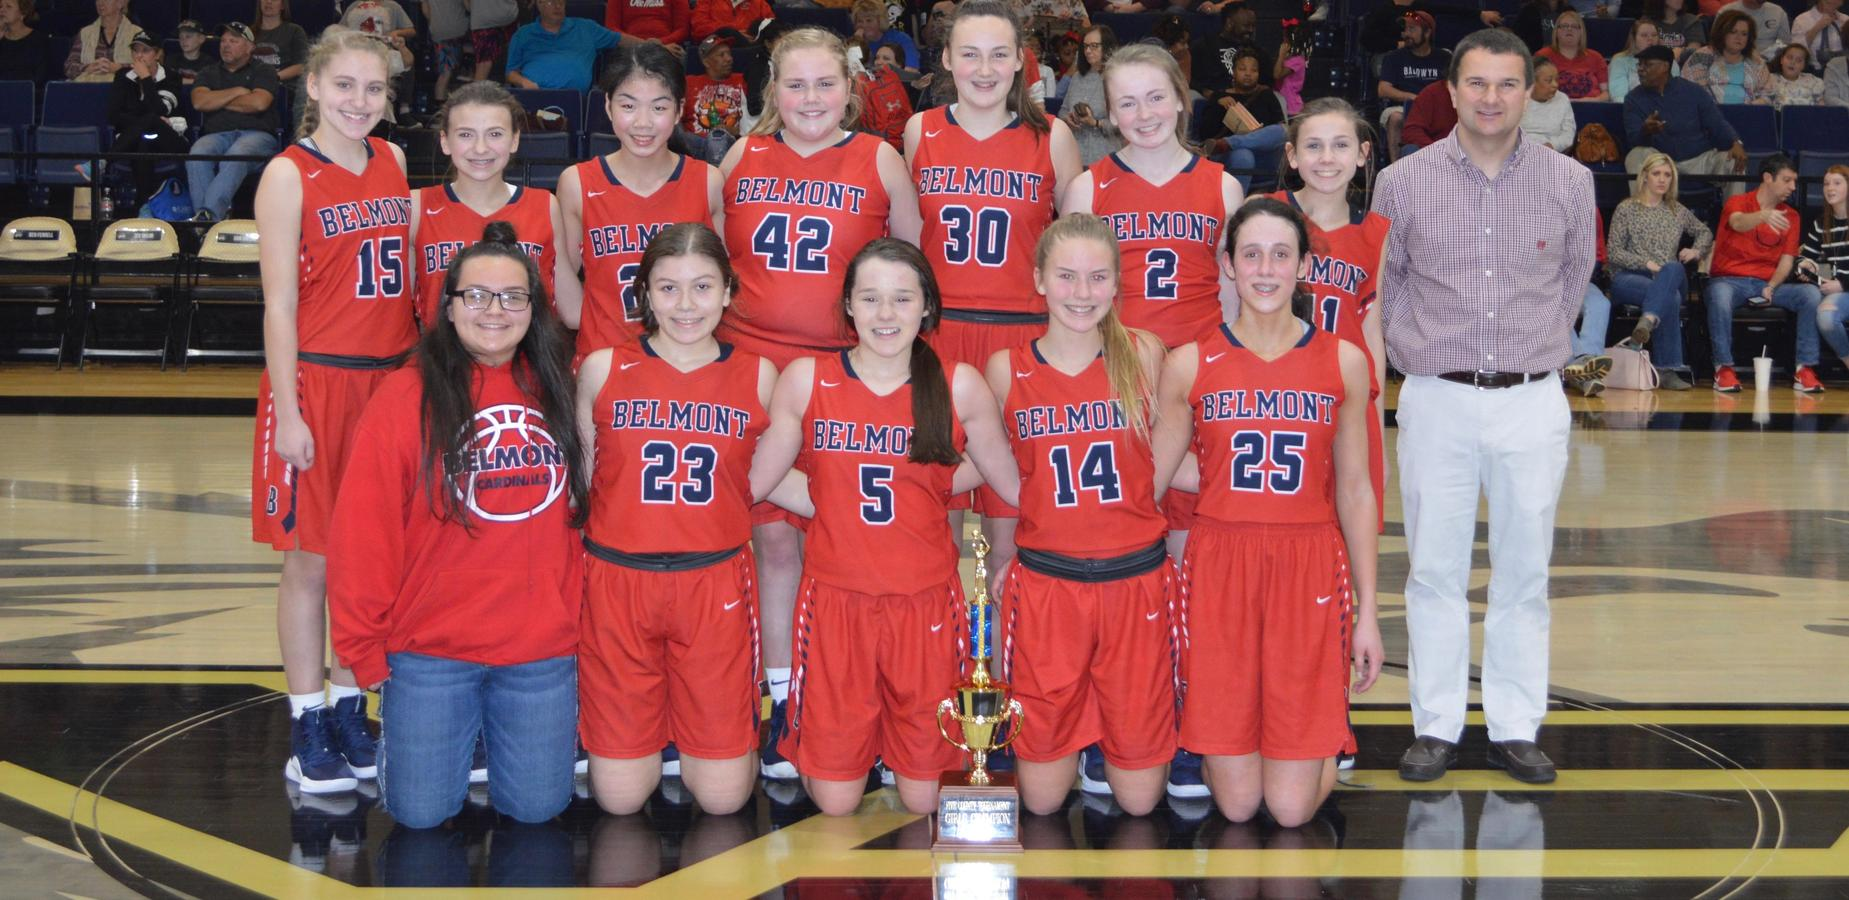 Belmont's Junior High Basketball Team wins the 5-County Tournament